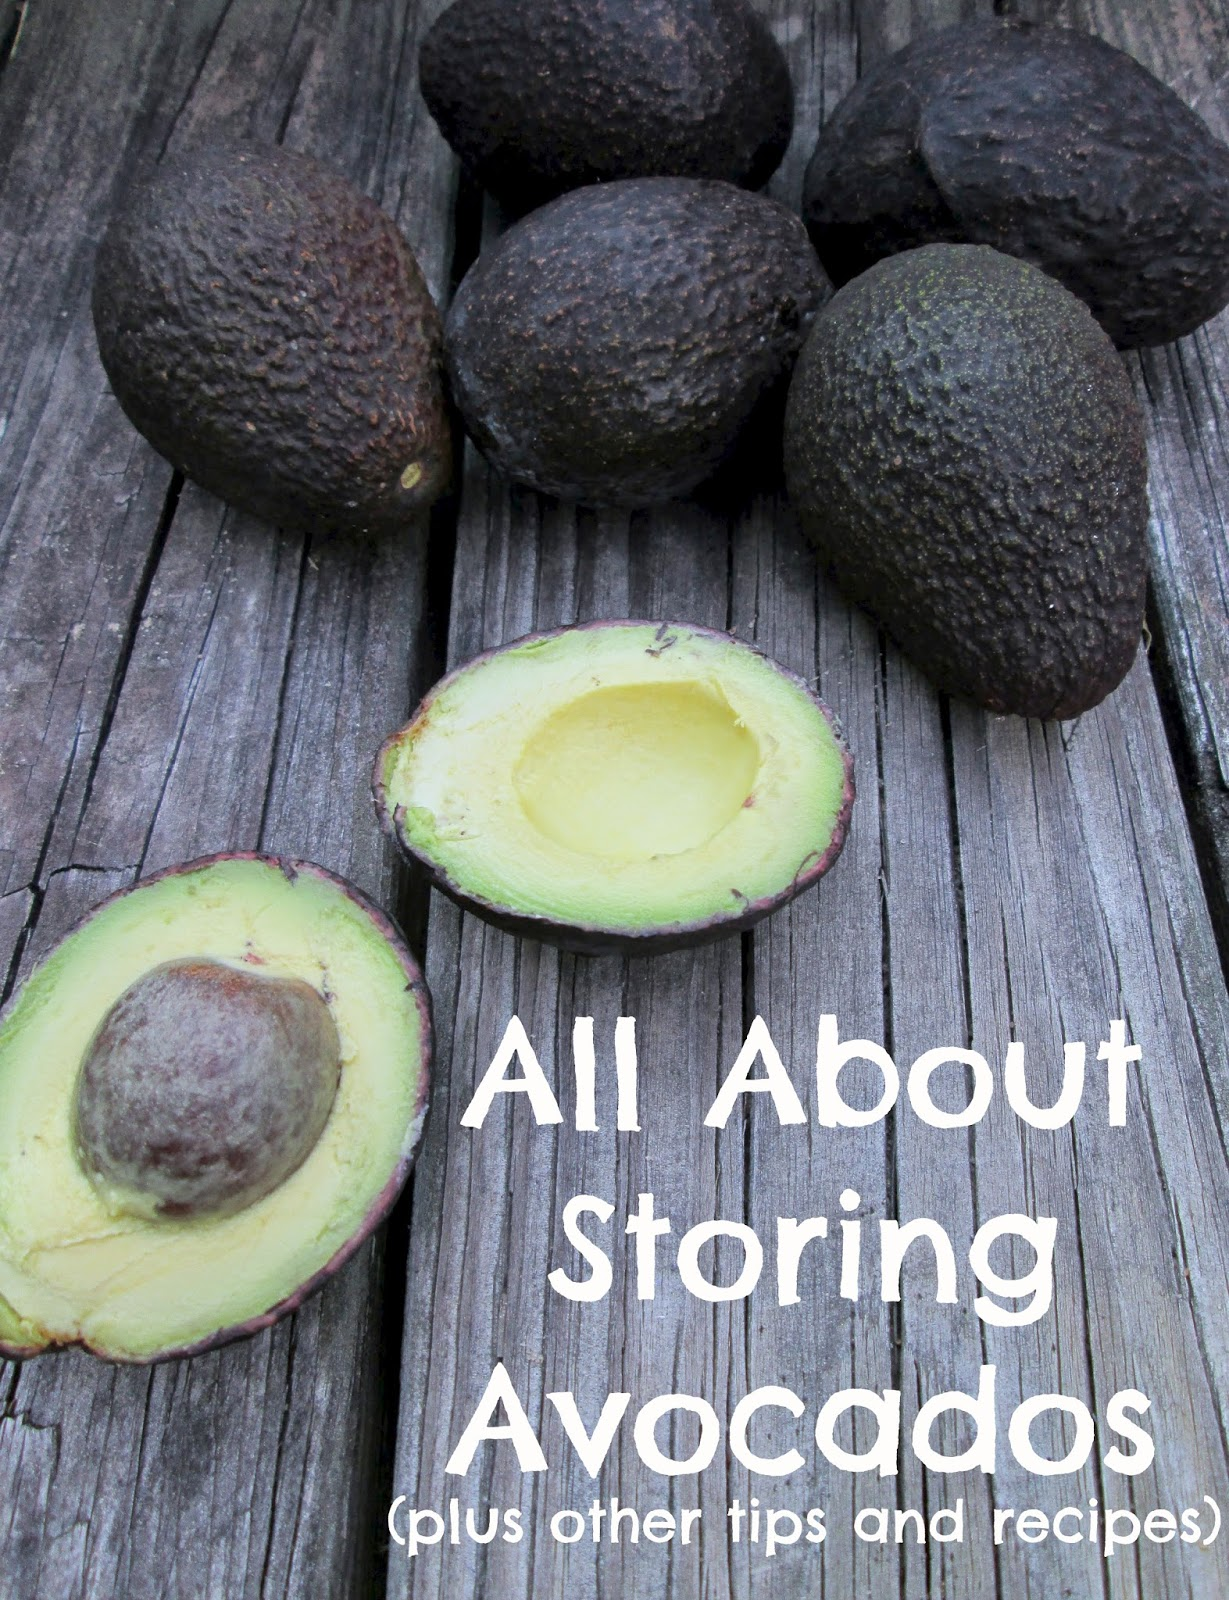 All About Storing Avocados (plus other tips and recipes)